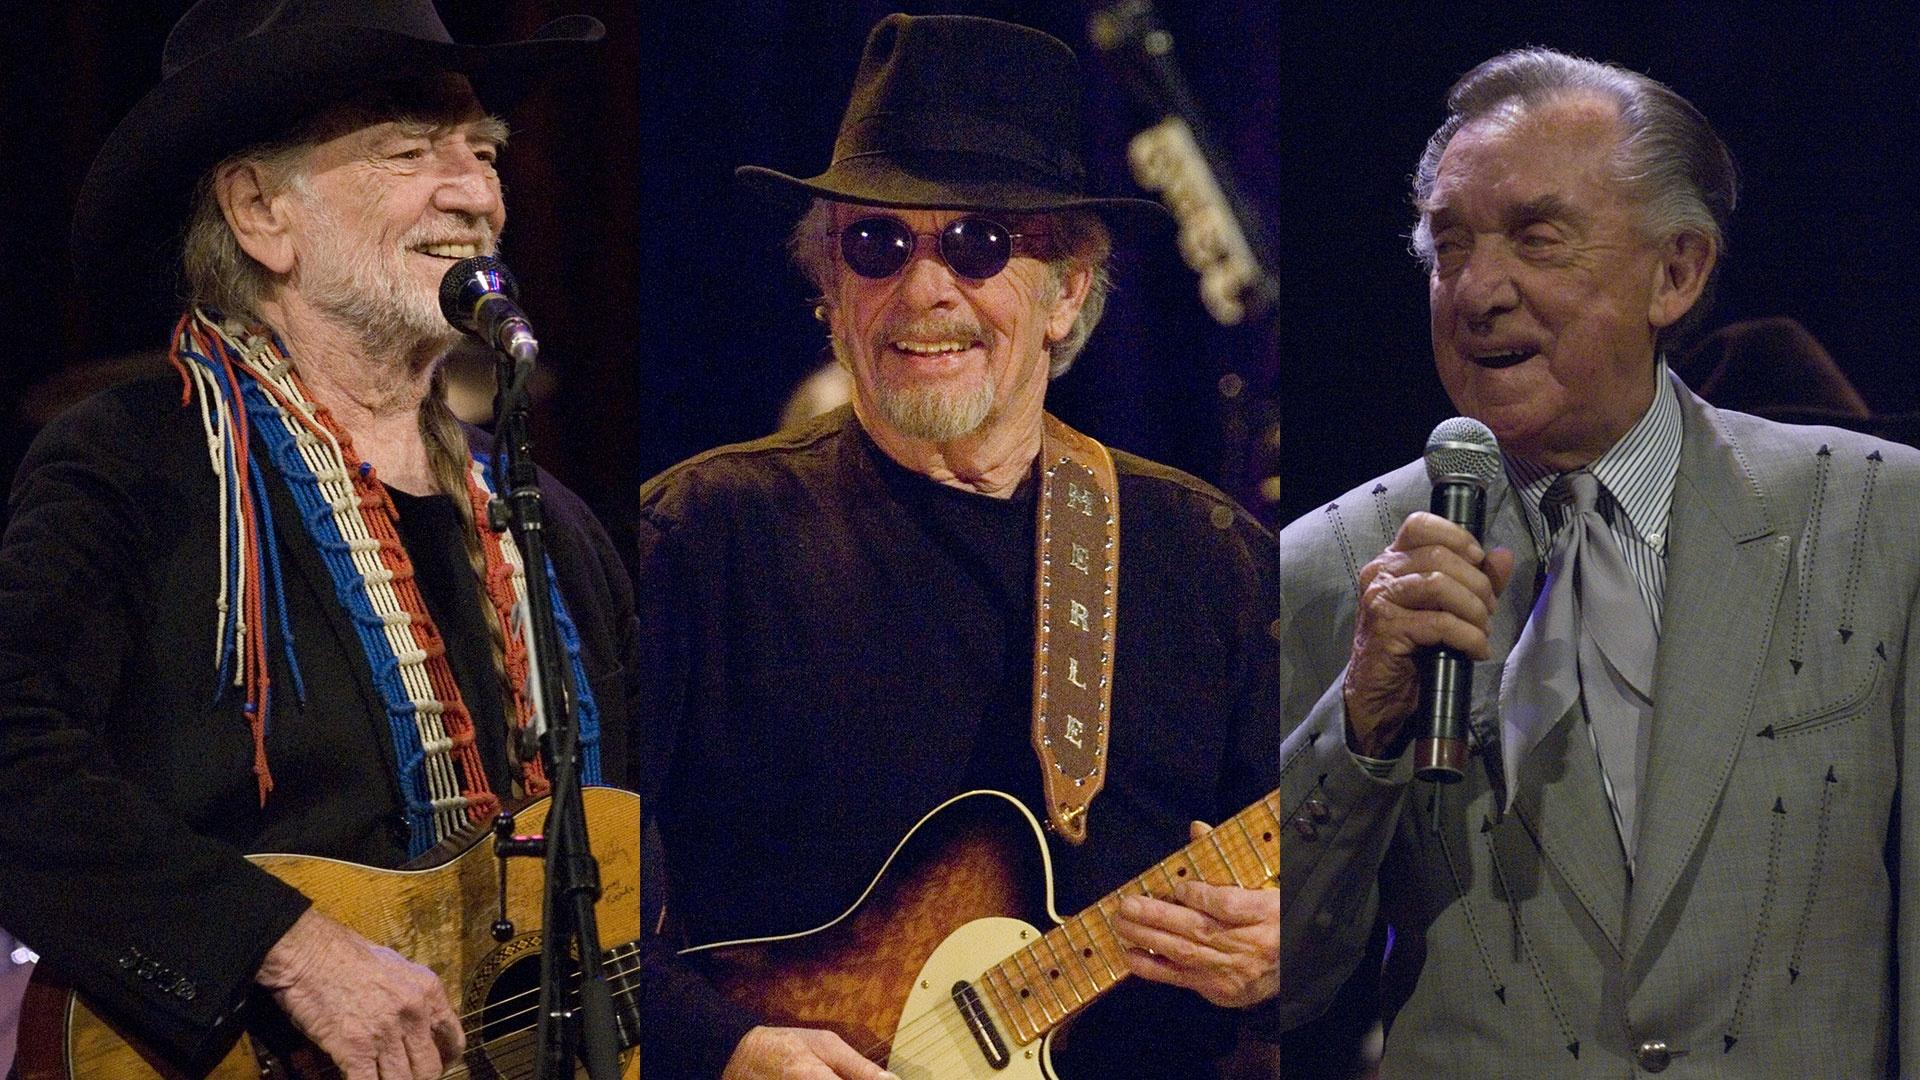 Willie Nelson, Merle Haggard and Ray Price